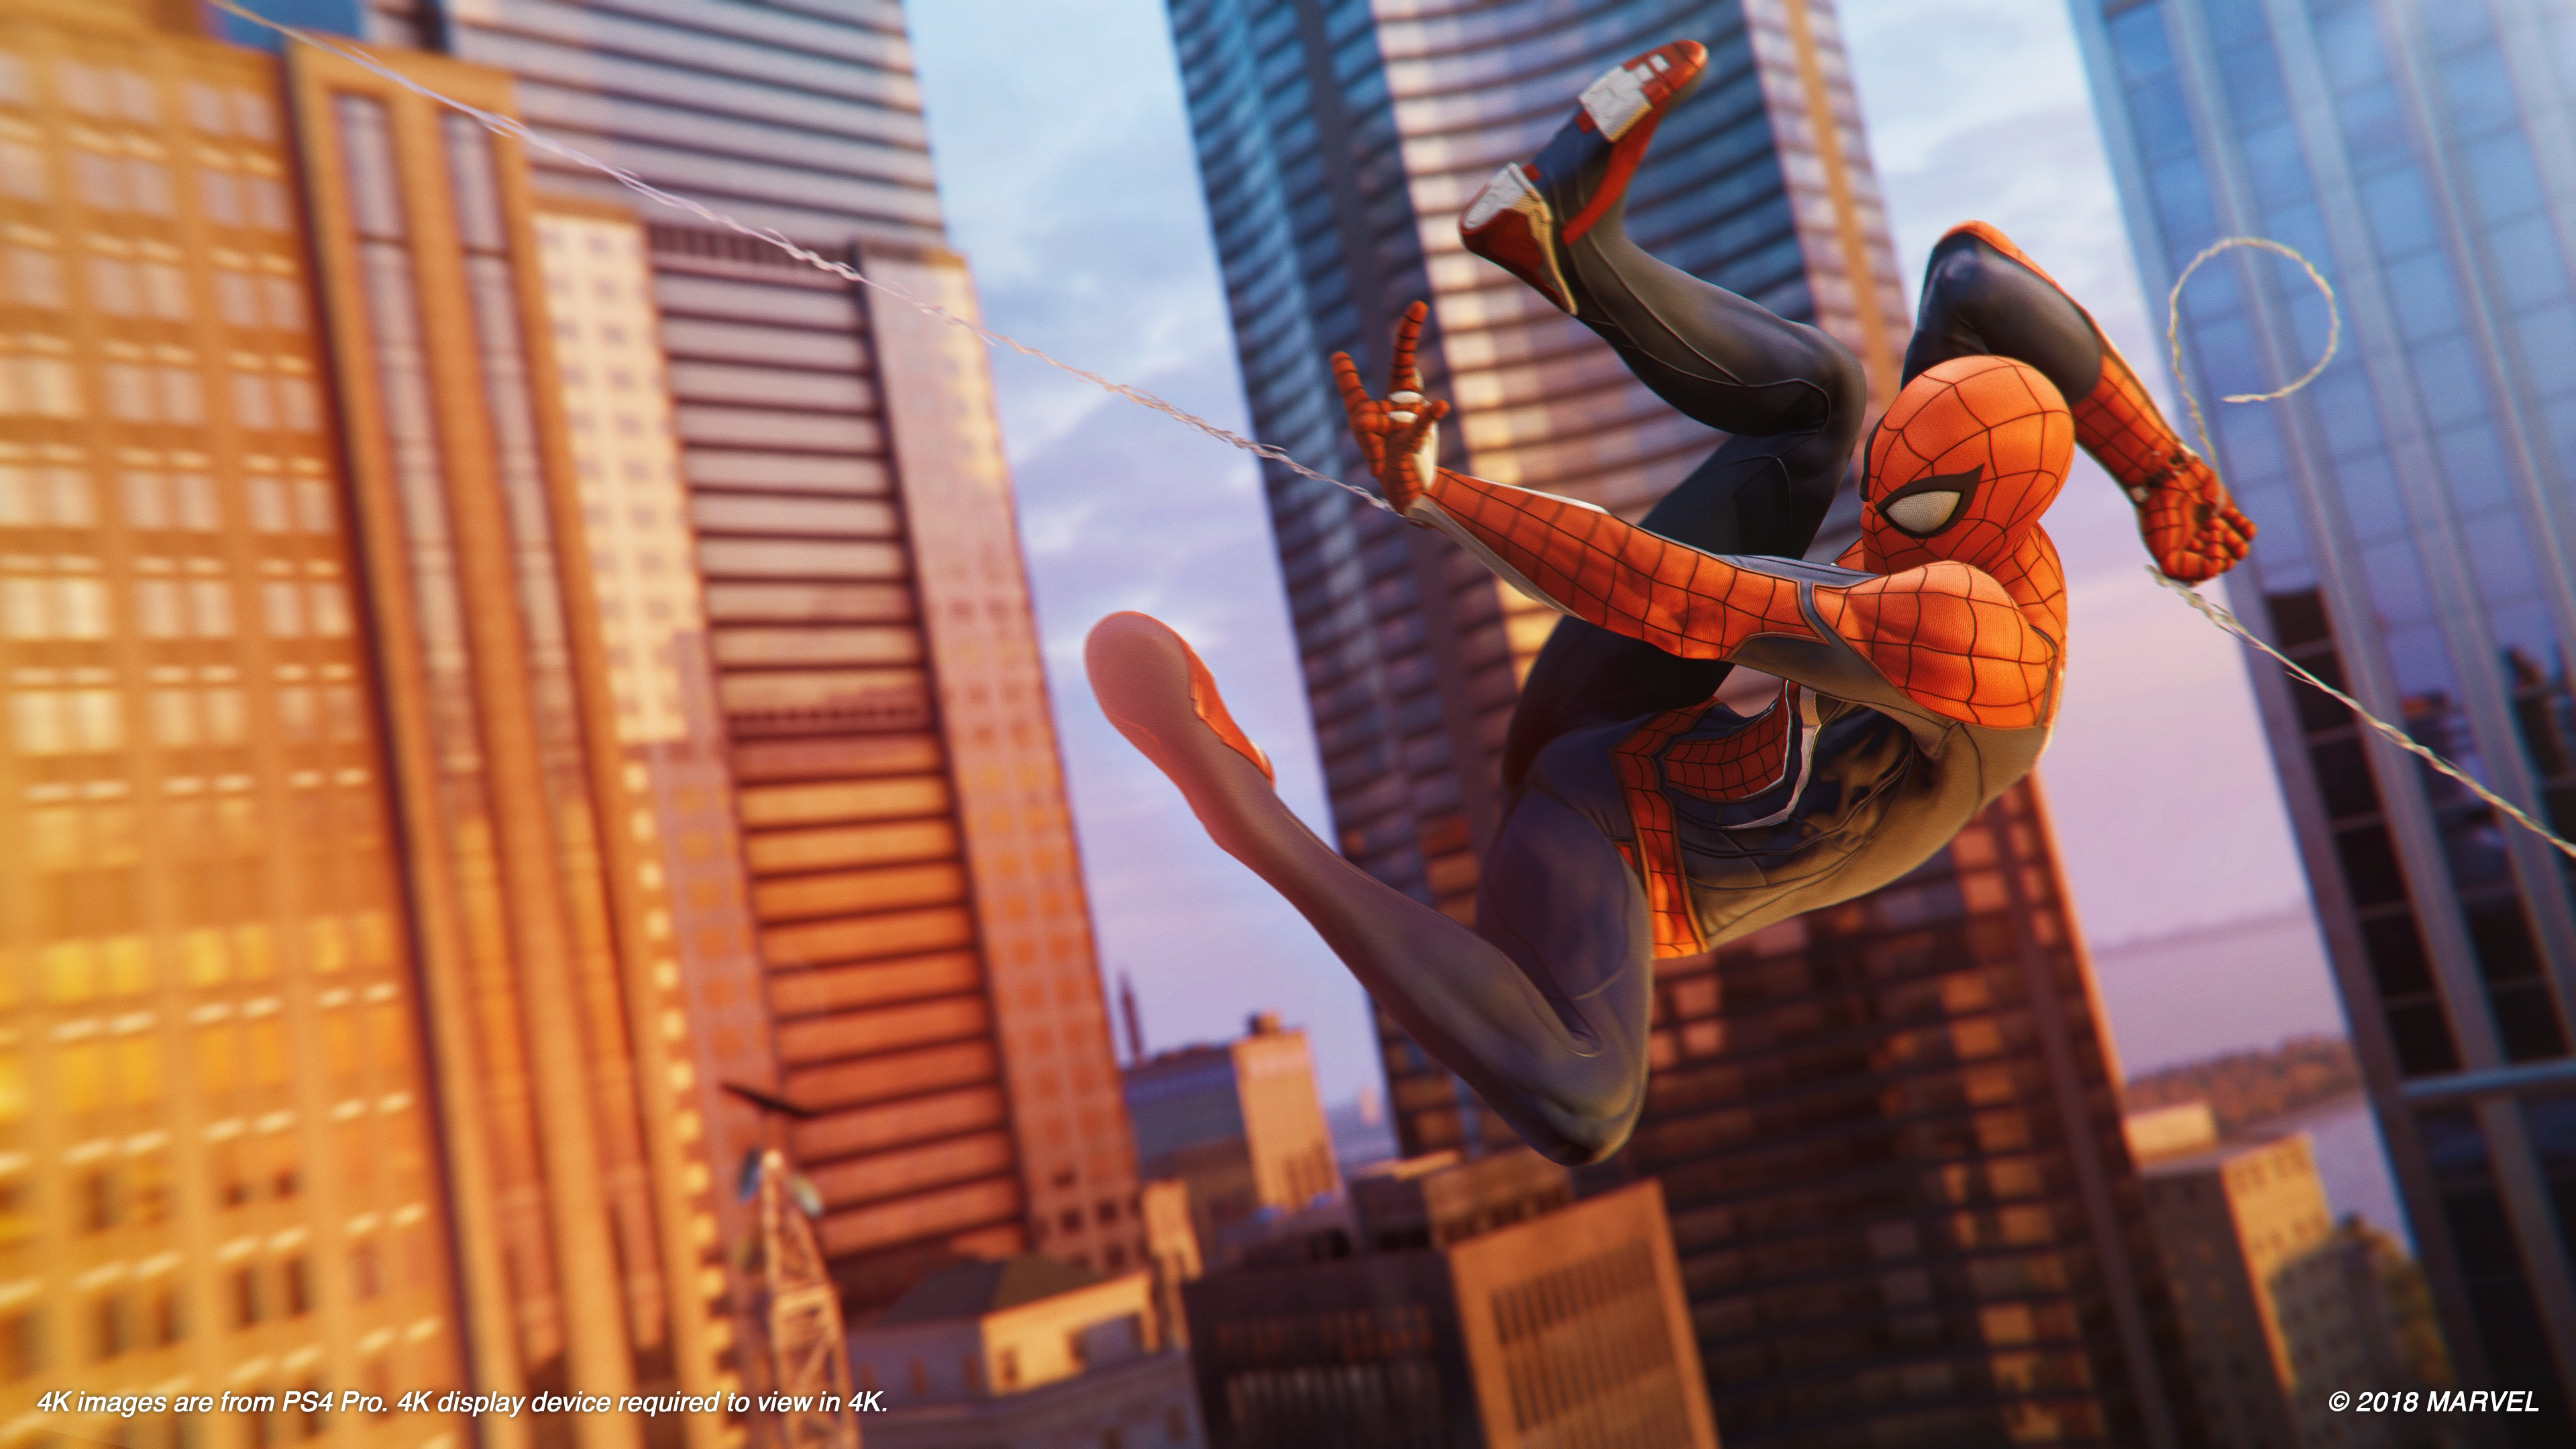 Anteprima Marvel's Spider-Man PS4 (8)